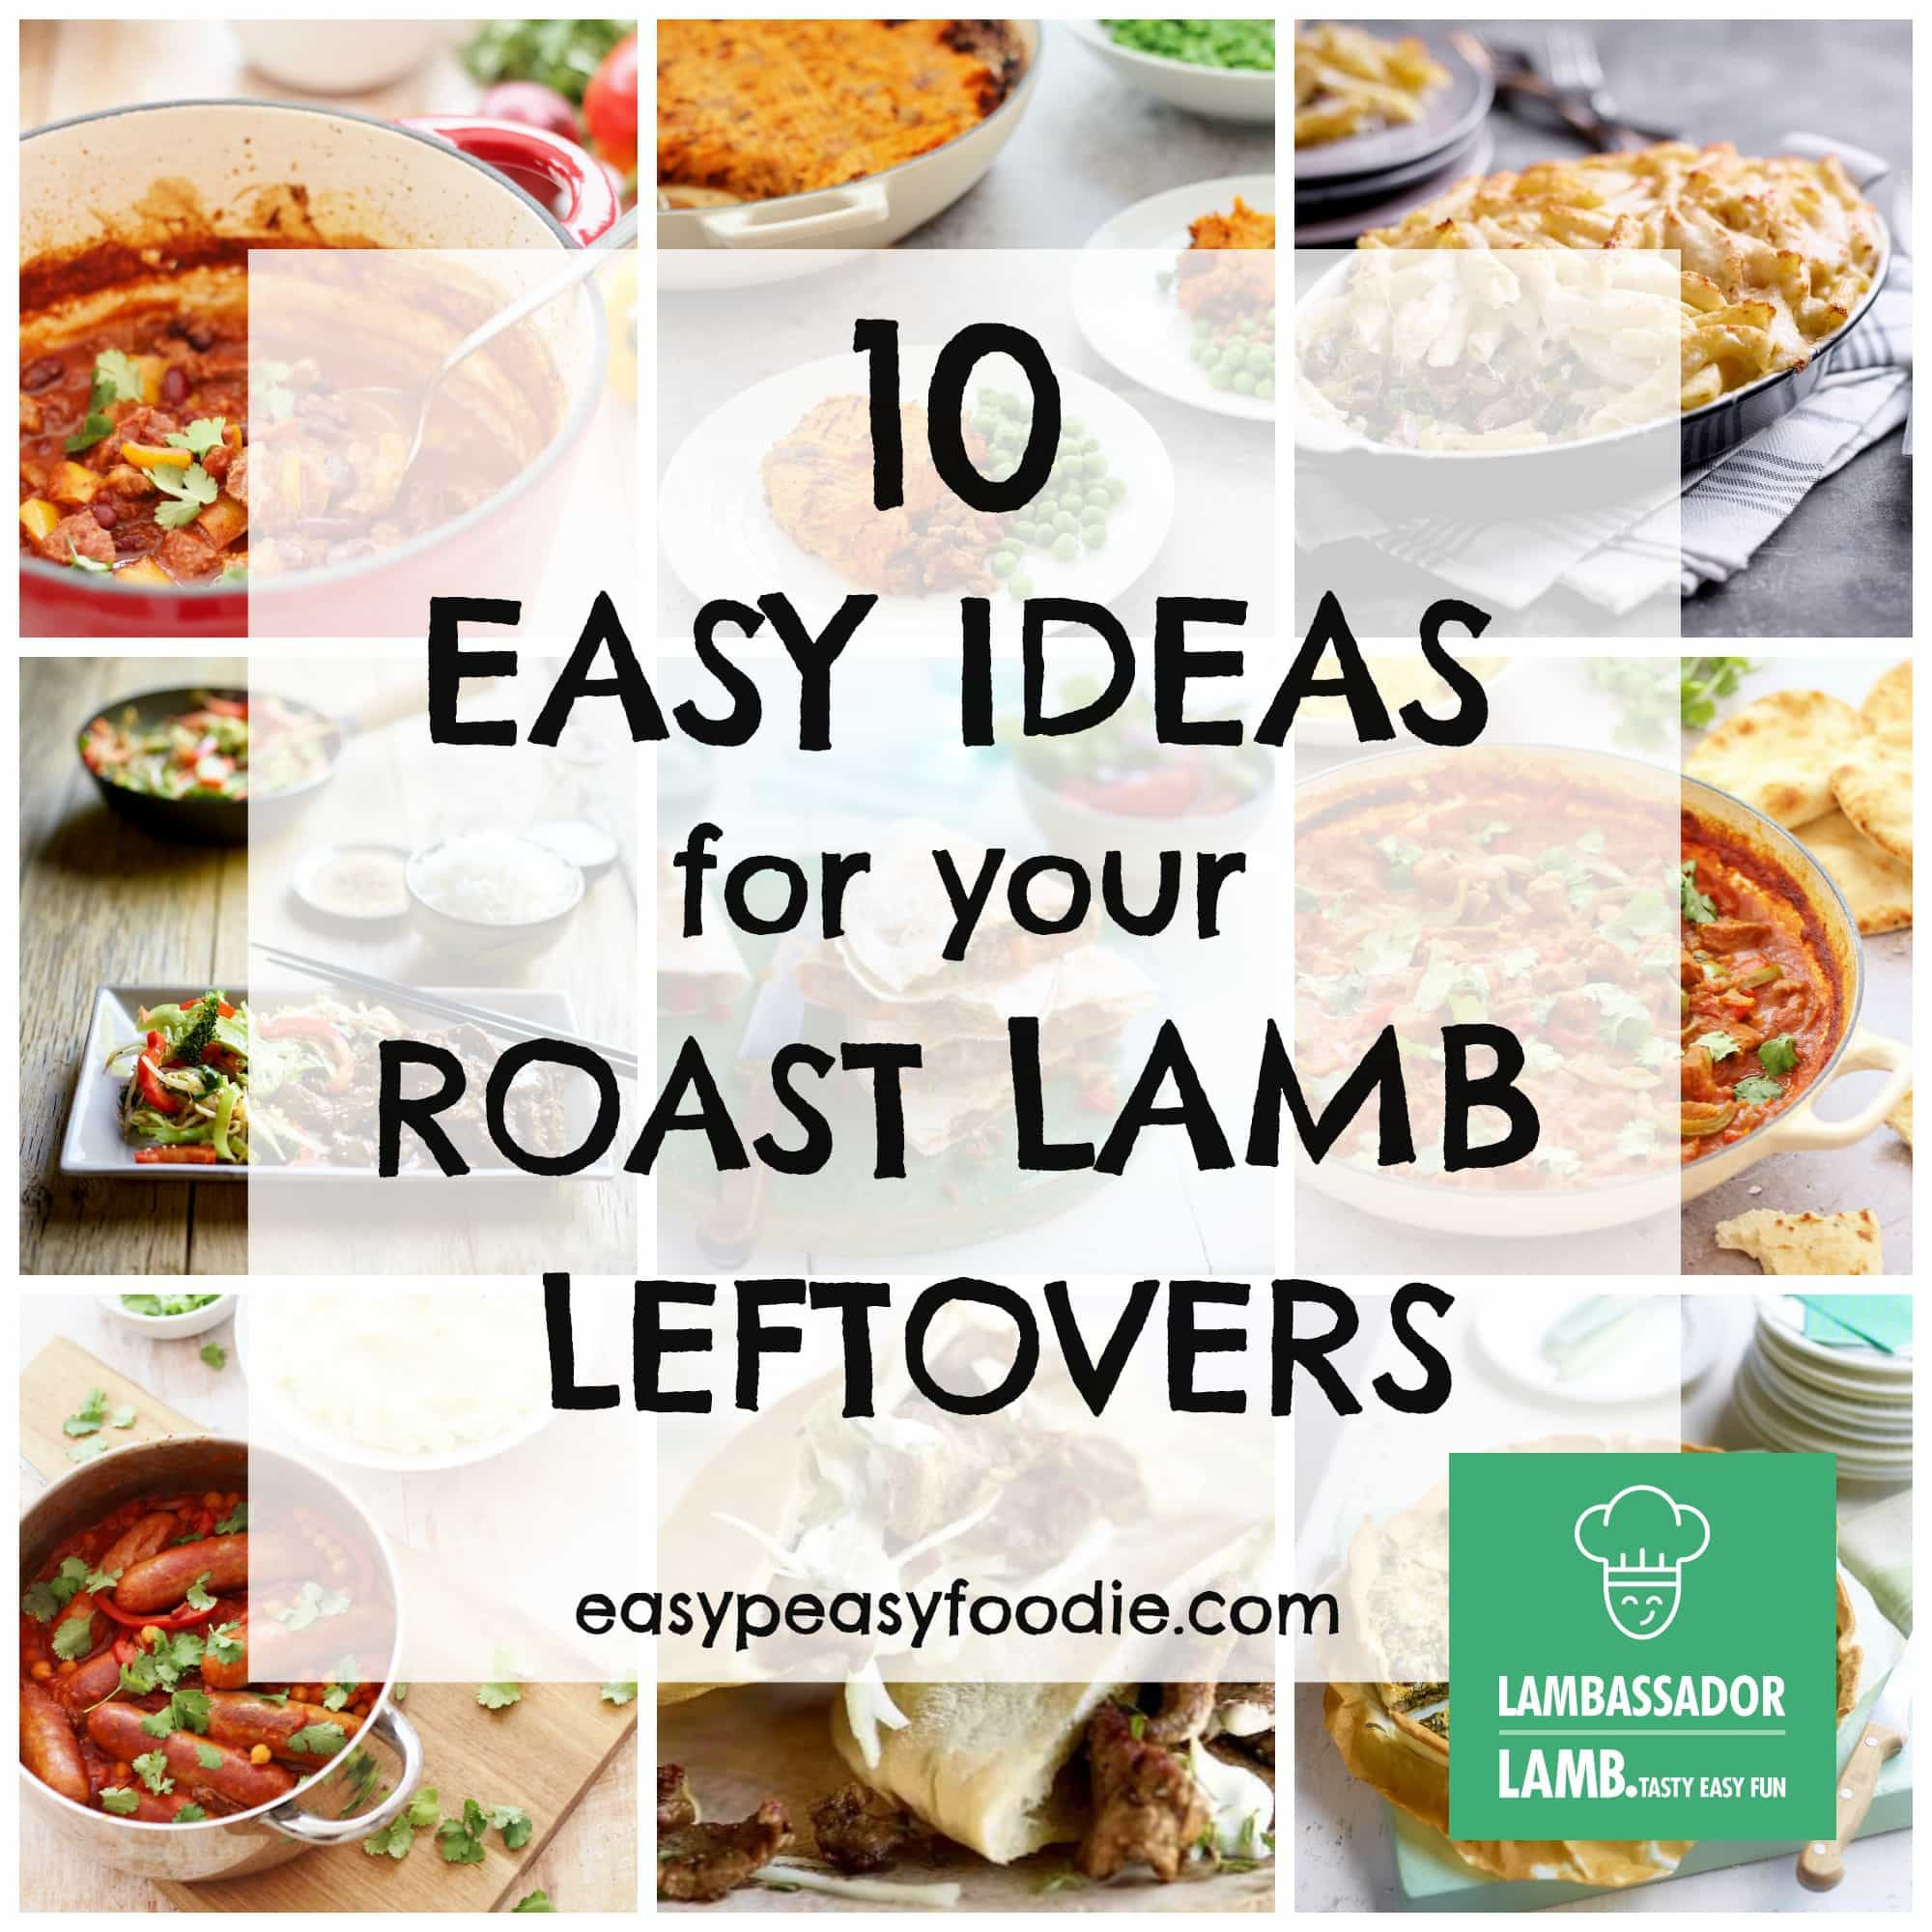 10 Easy Ideas for your Roast Lamb Leftovers - Easy Peasy Foodie